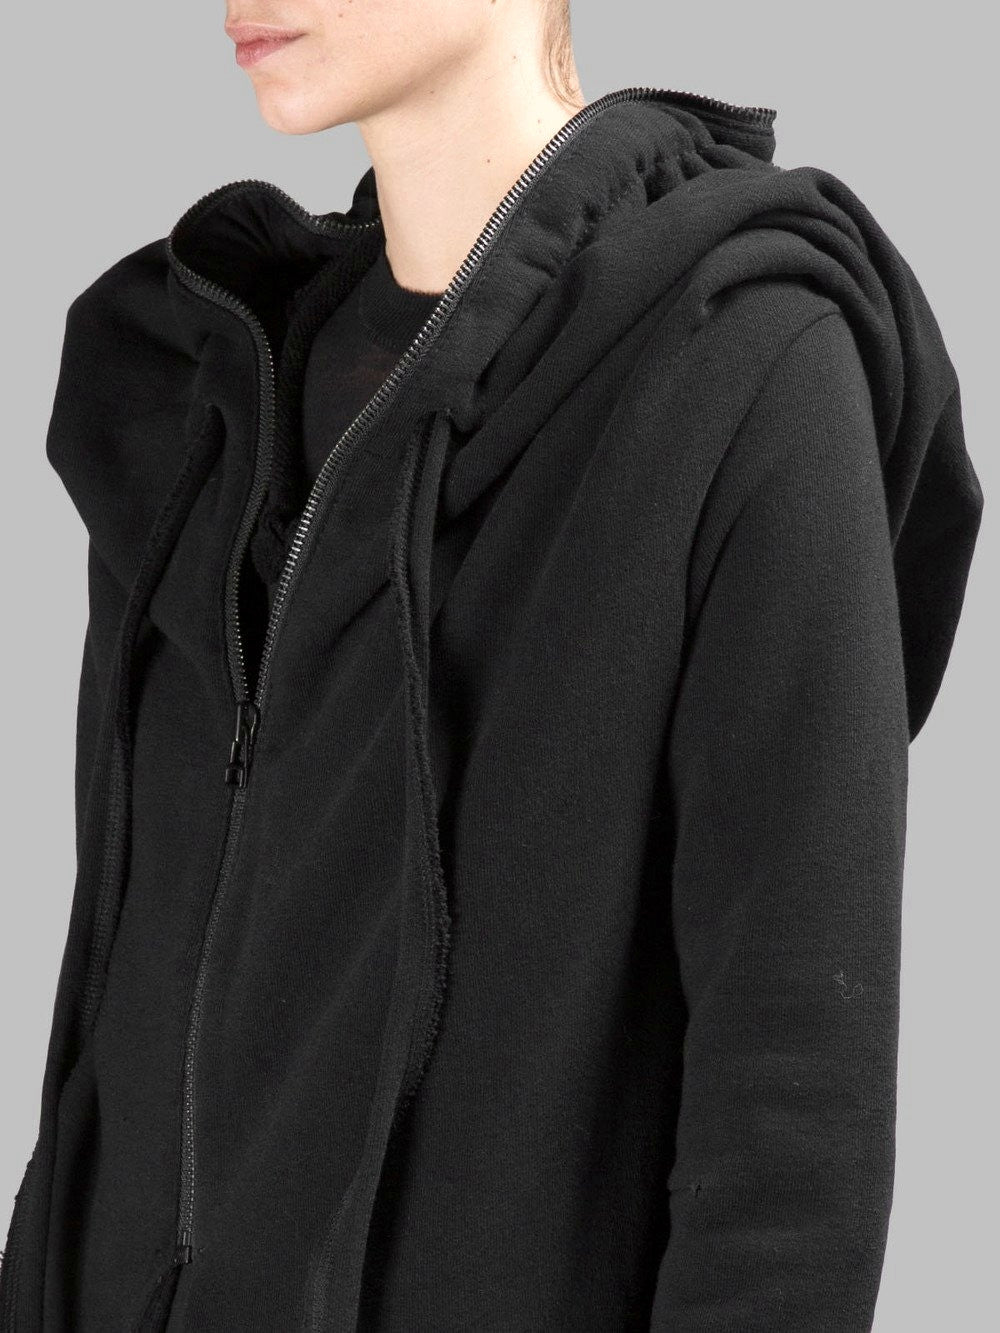 Women Asymmetric Raw Cut Seam Detail Sweaters Hoodie Zipped Side Pockets